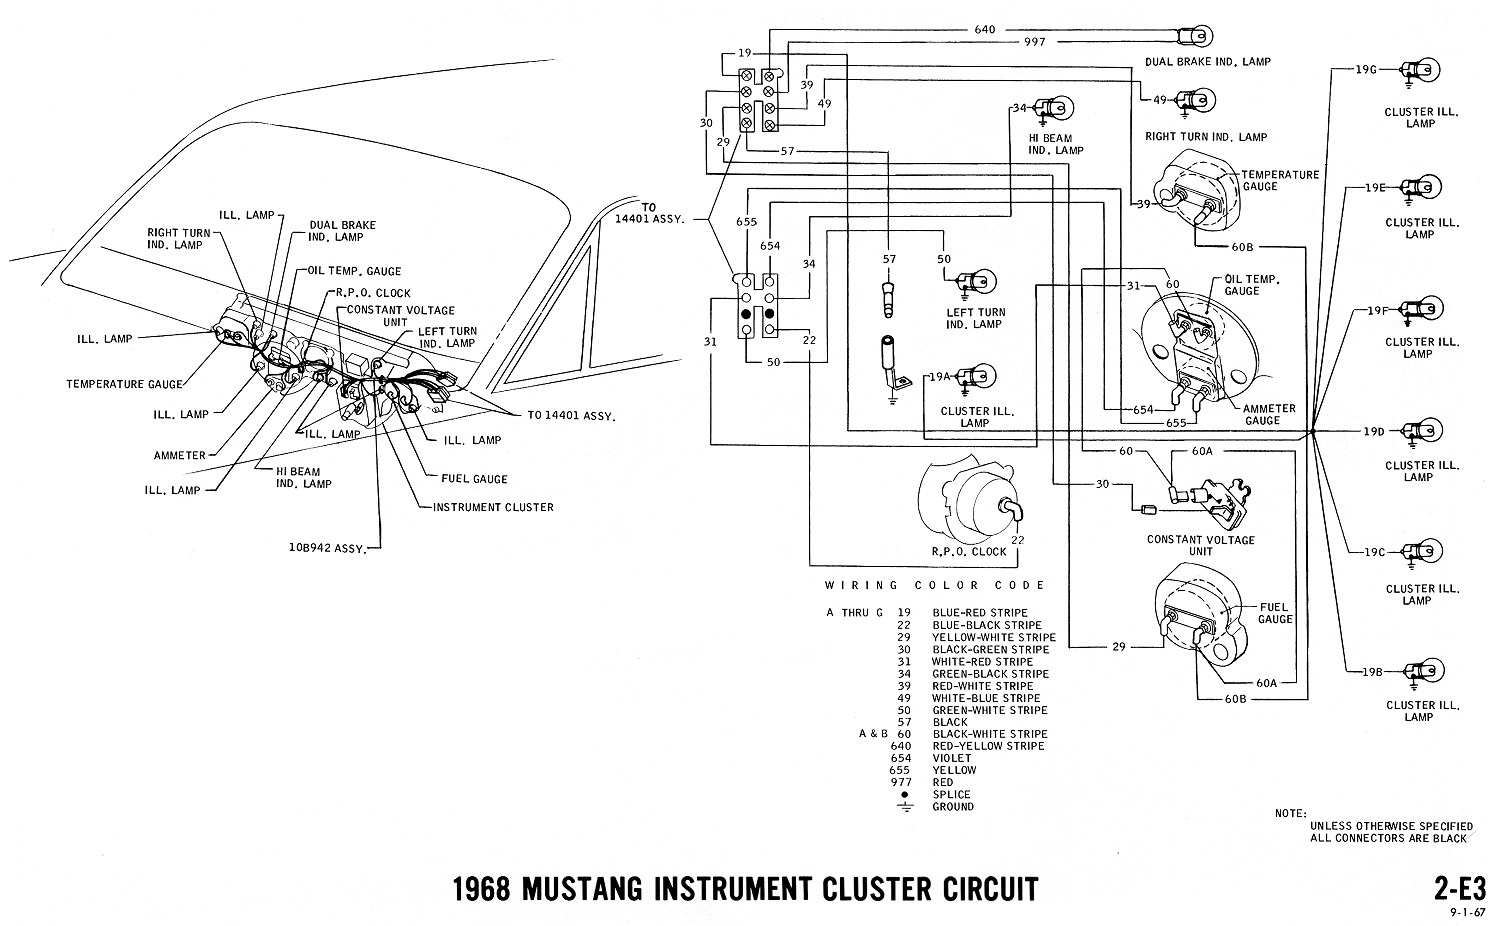 1968 mustang wiring diagrams and vacuum schematics 1969 Mustang Fuse Box Diagram 1970 Mustang Fuse Box Diagram